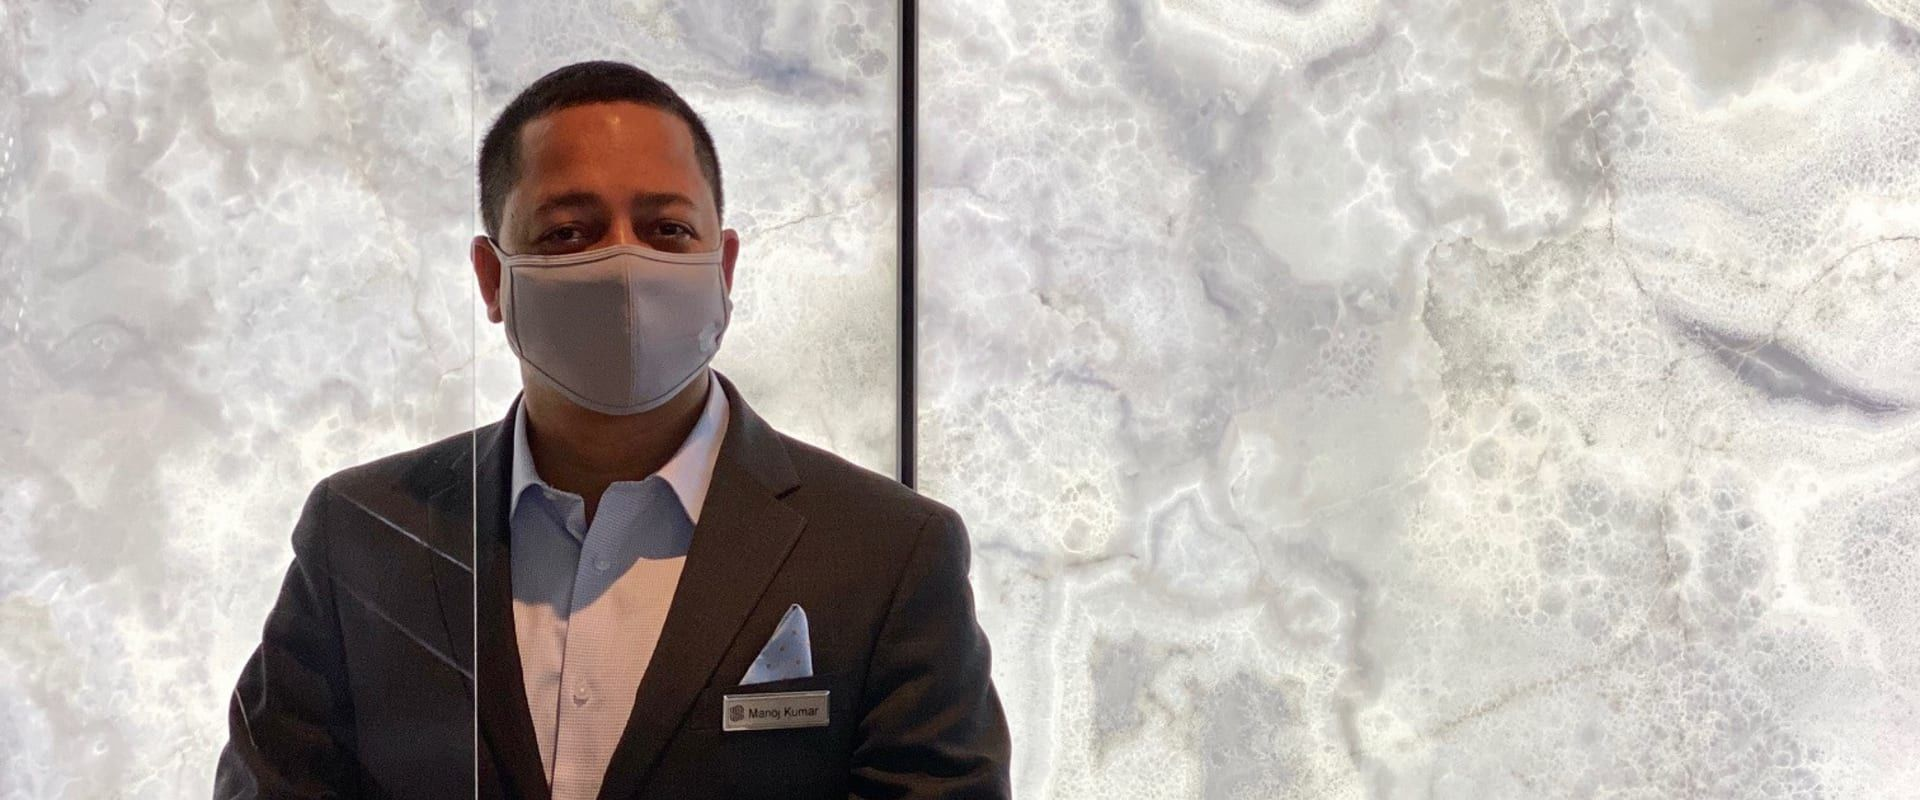 Employee at front desk with mask